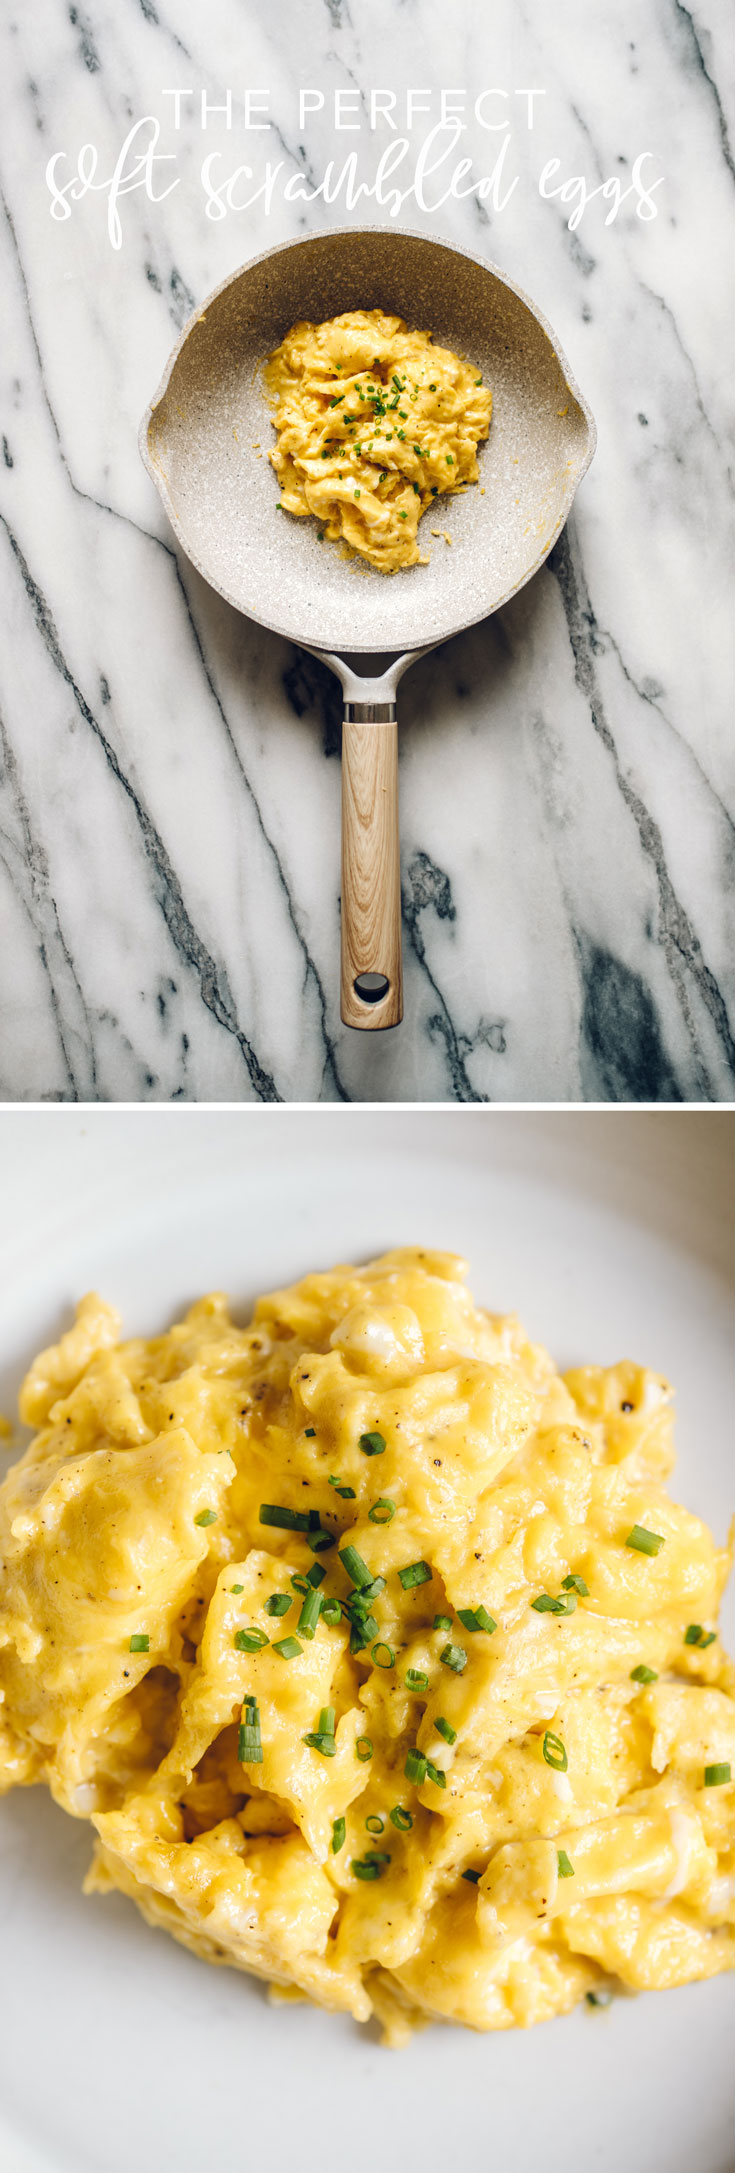 Intuitive Cooking : The Perfect Soft Scrambled Eggs